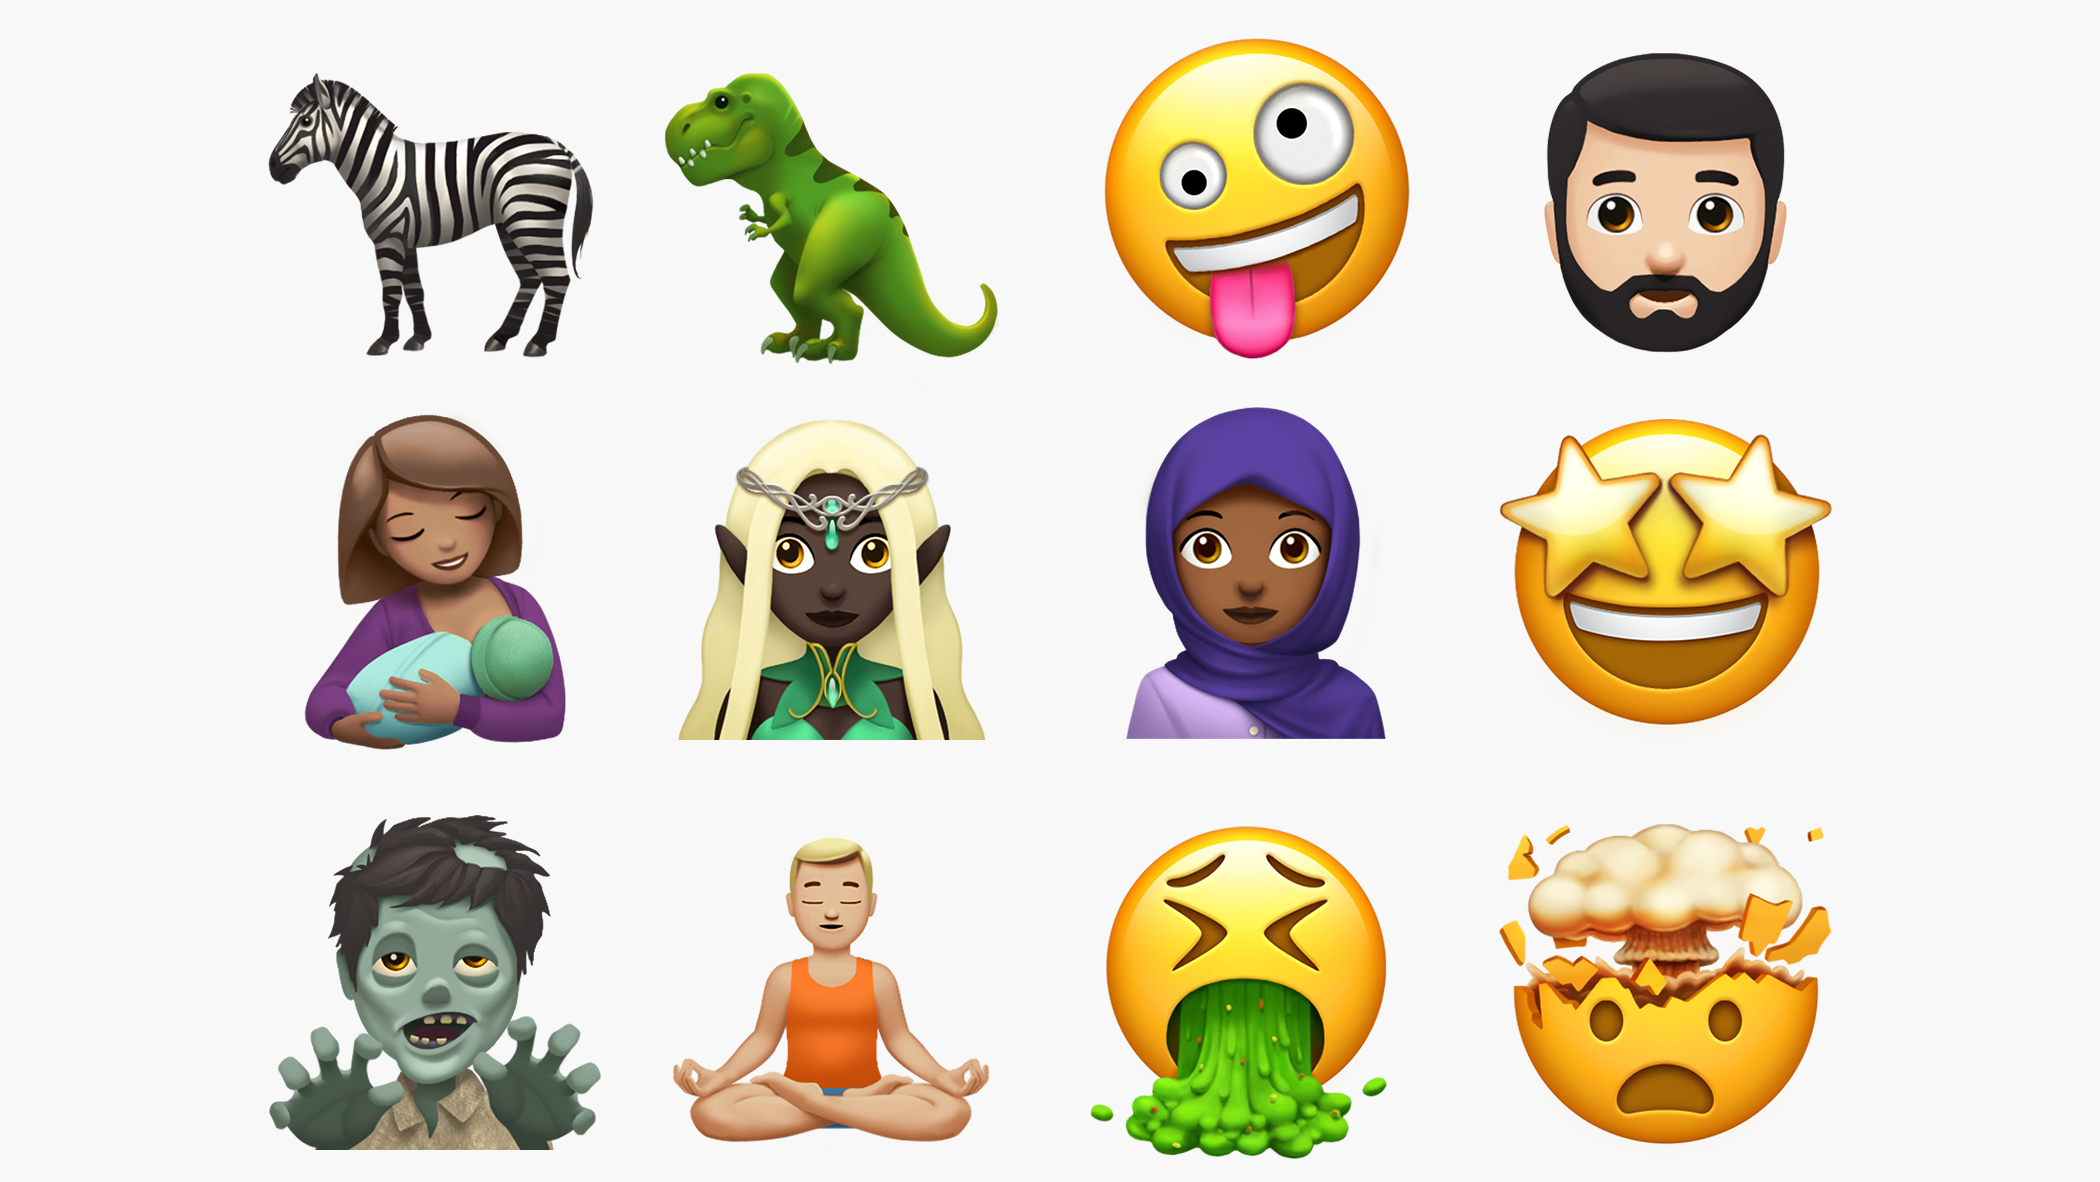 Zombies and vomit: The new emoji coming soon to the iPhone